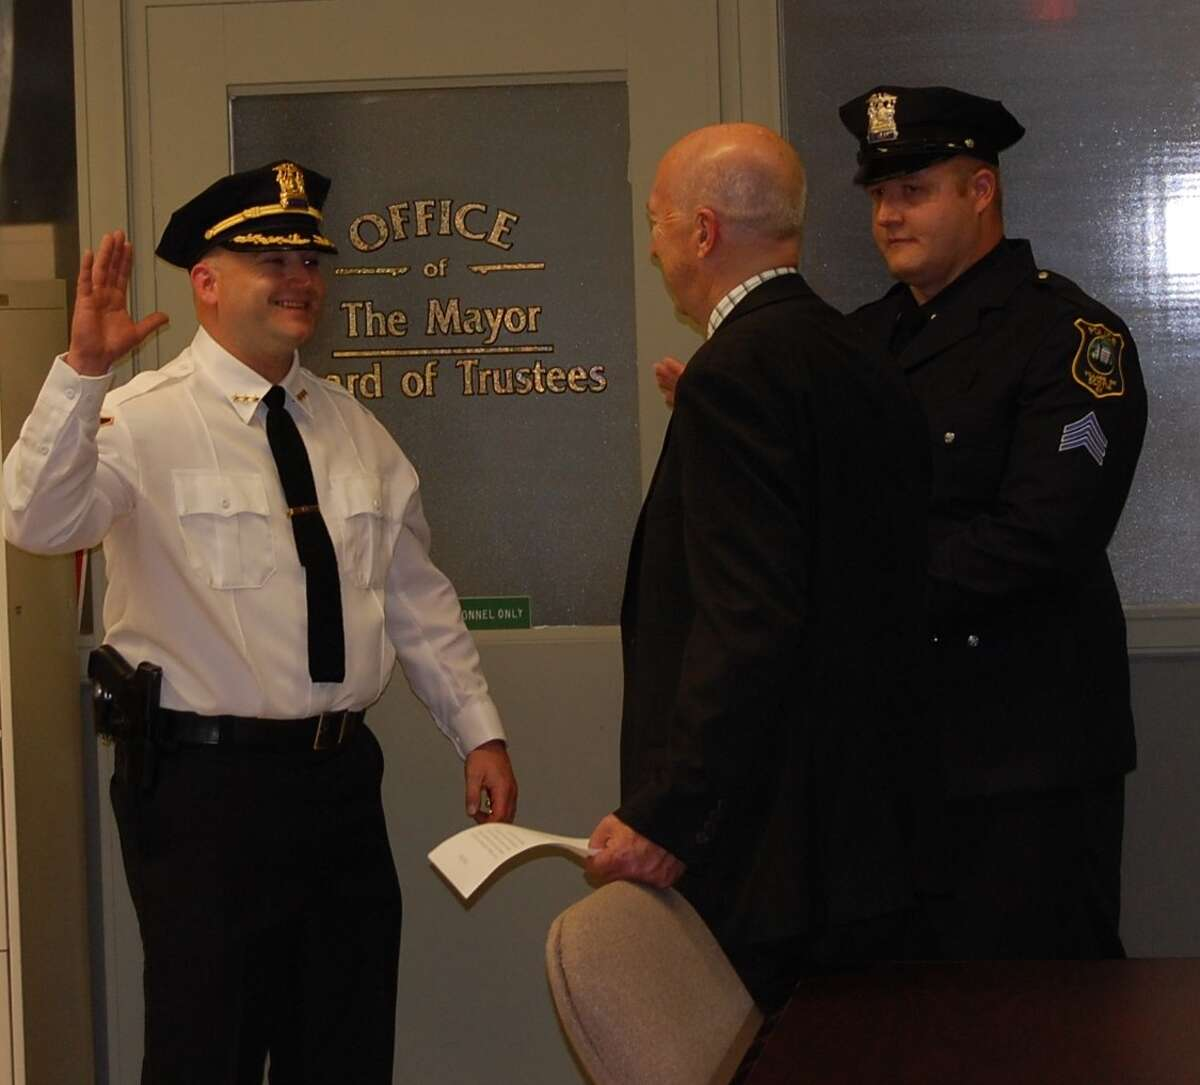 The new Scotia village police chief, Daniel Harrigan, takes the oath.